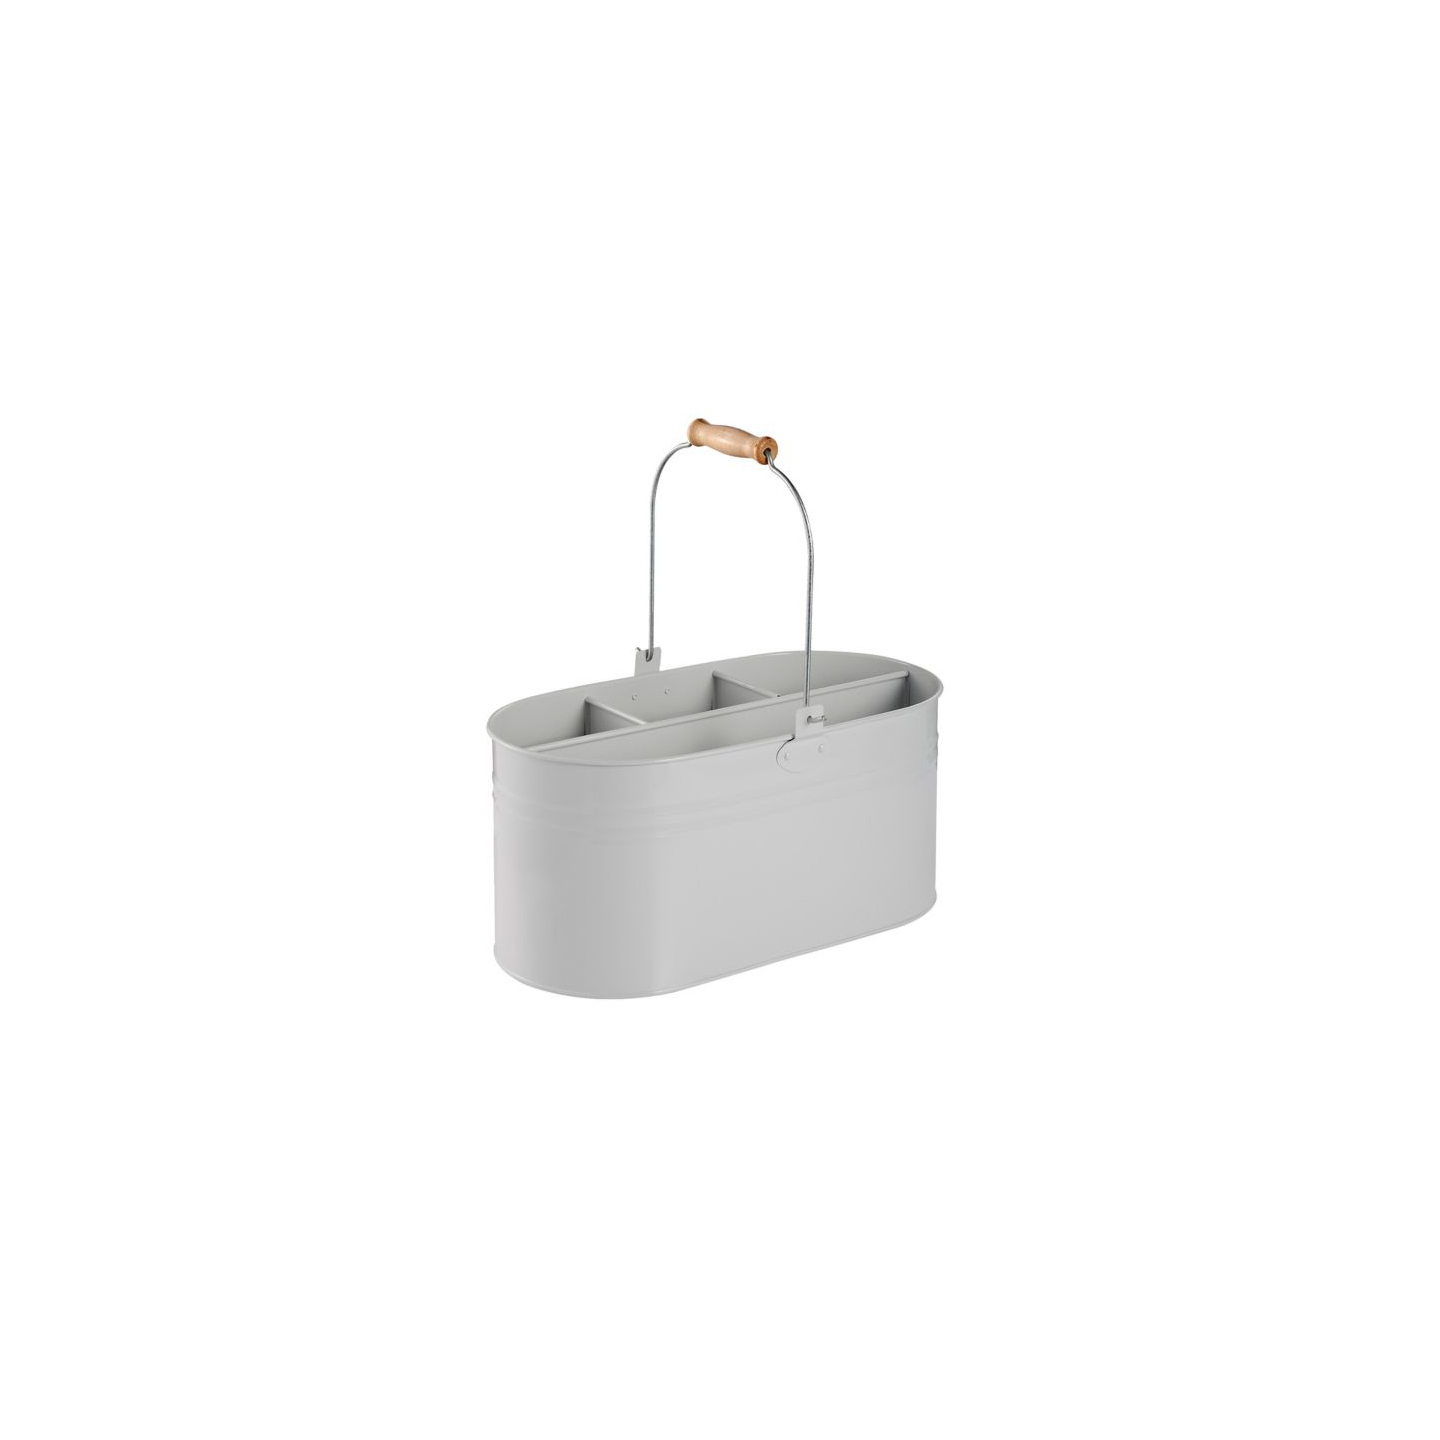 Bee & Willow Home Metal Cleaning Caddy